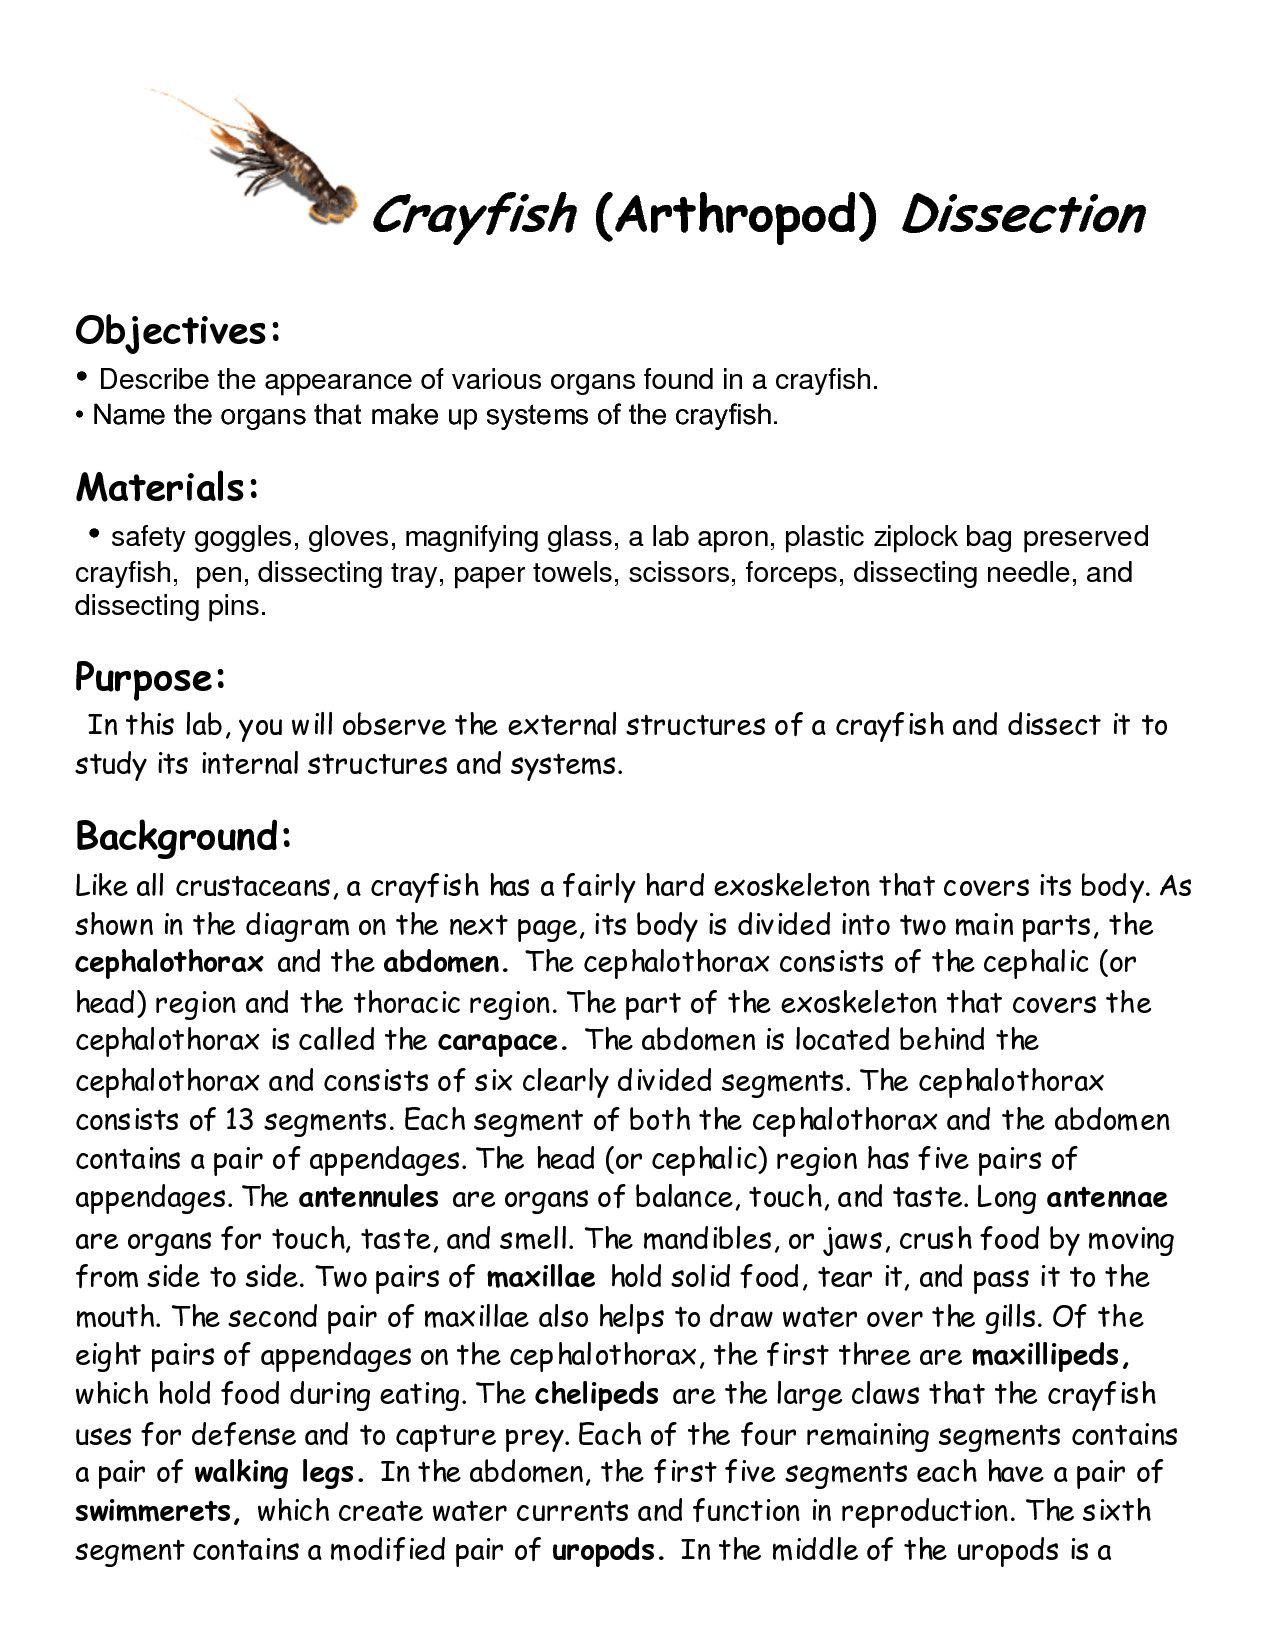 Formal Crayfish Dissection Worksheet Answers